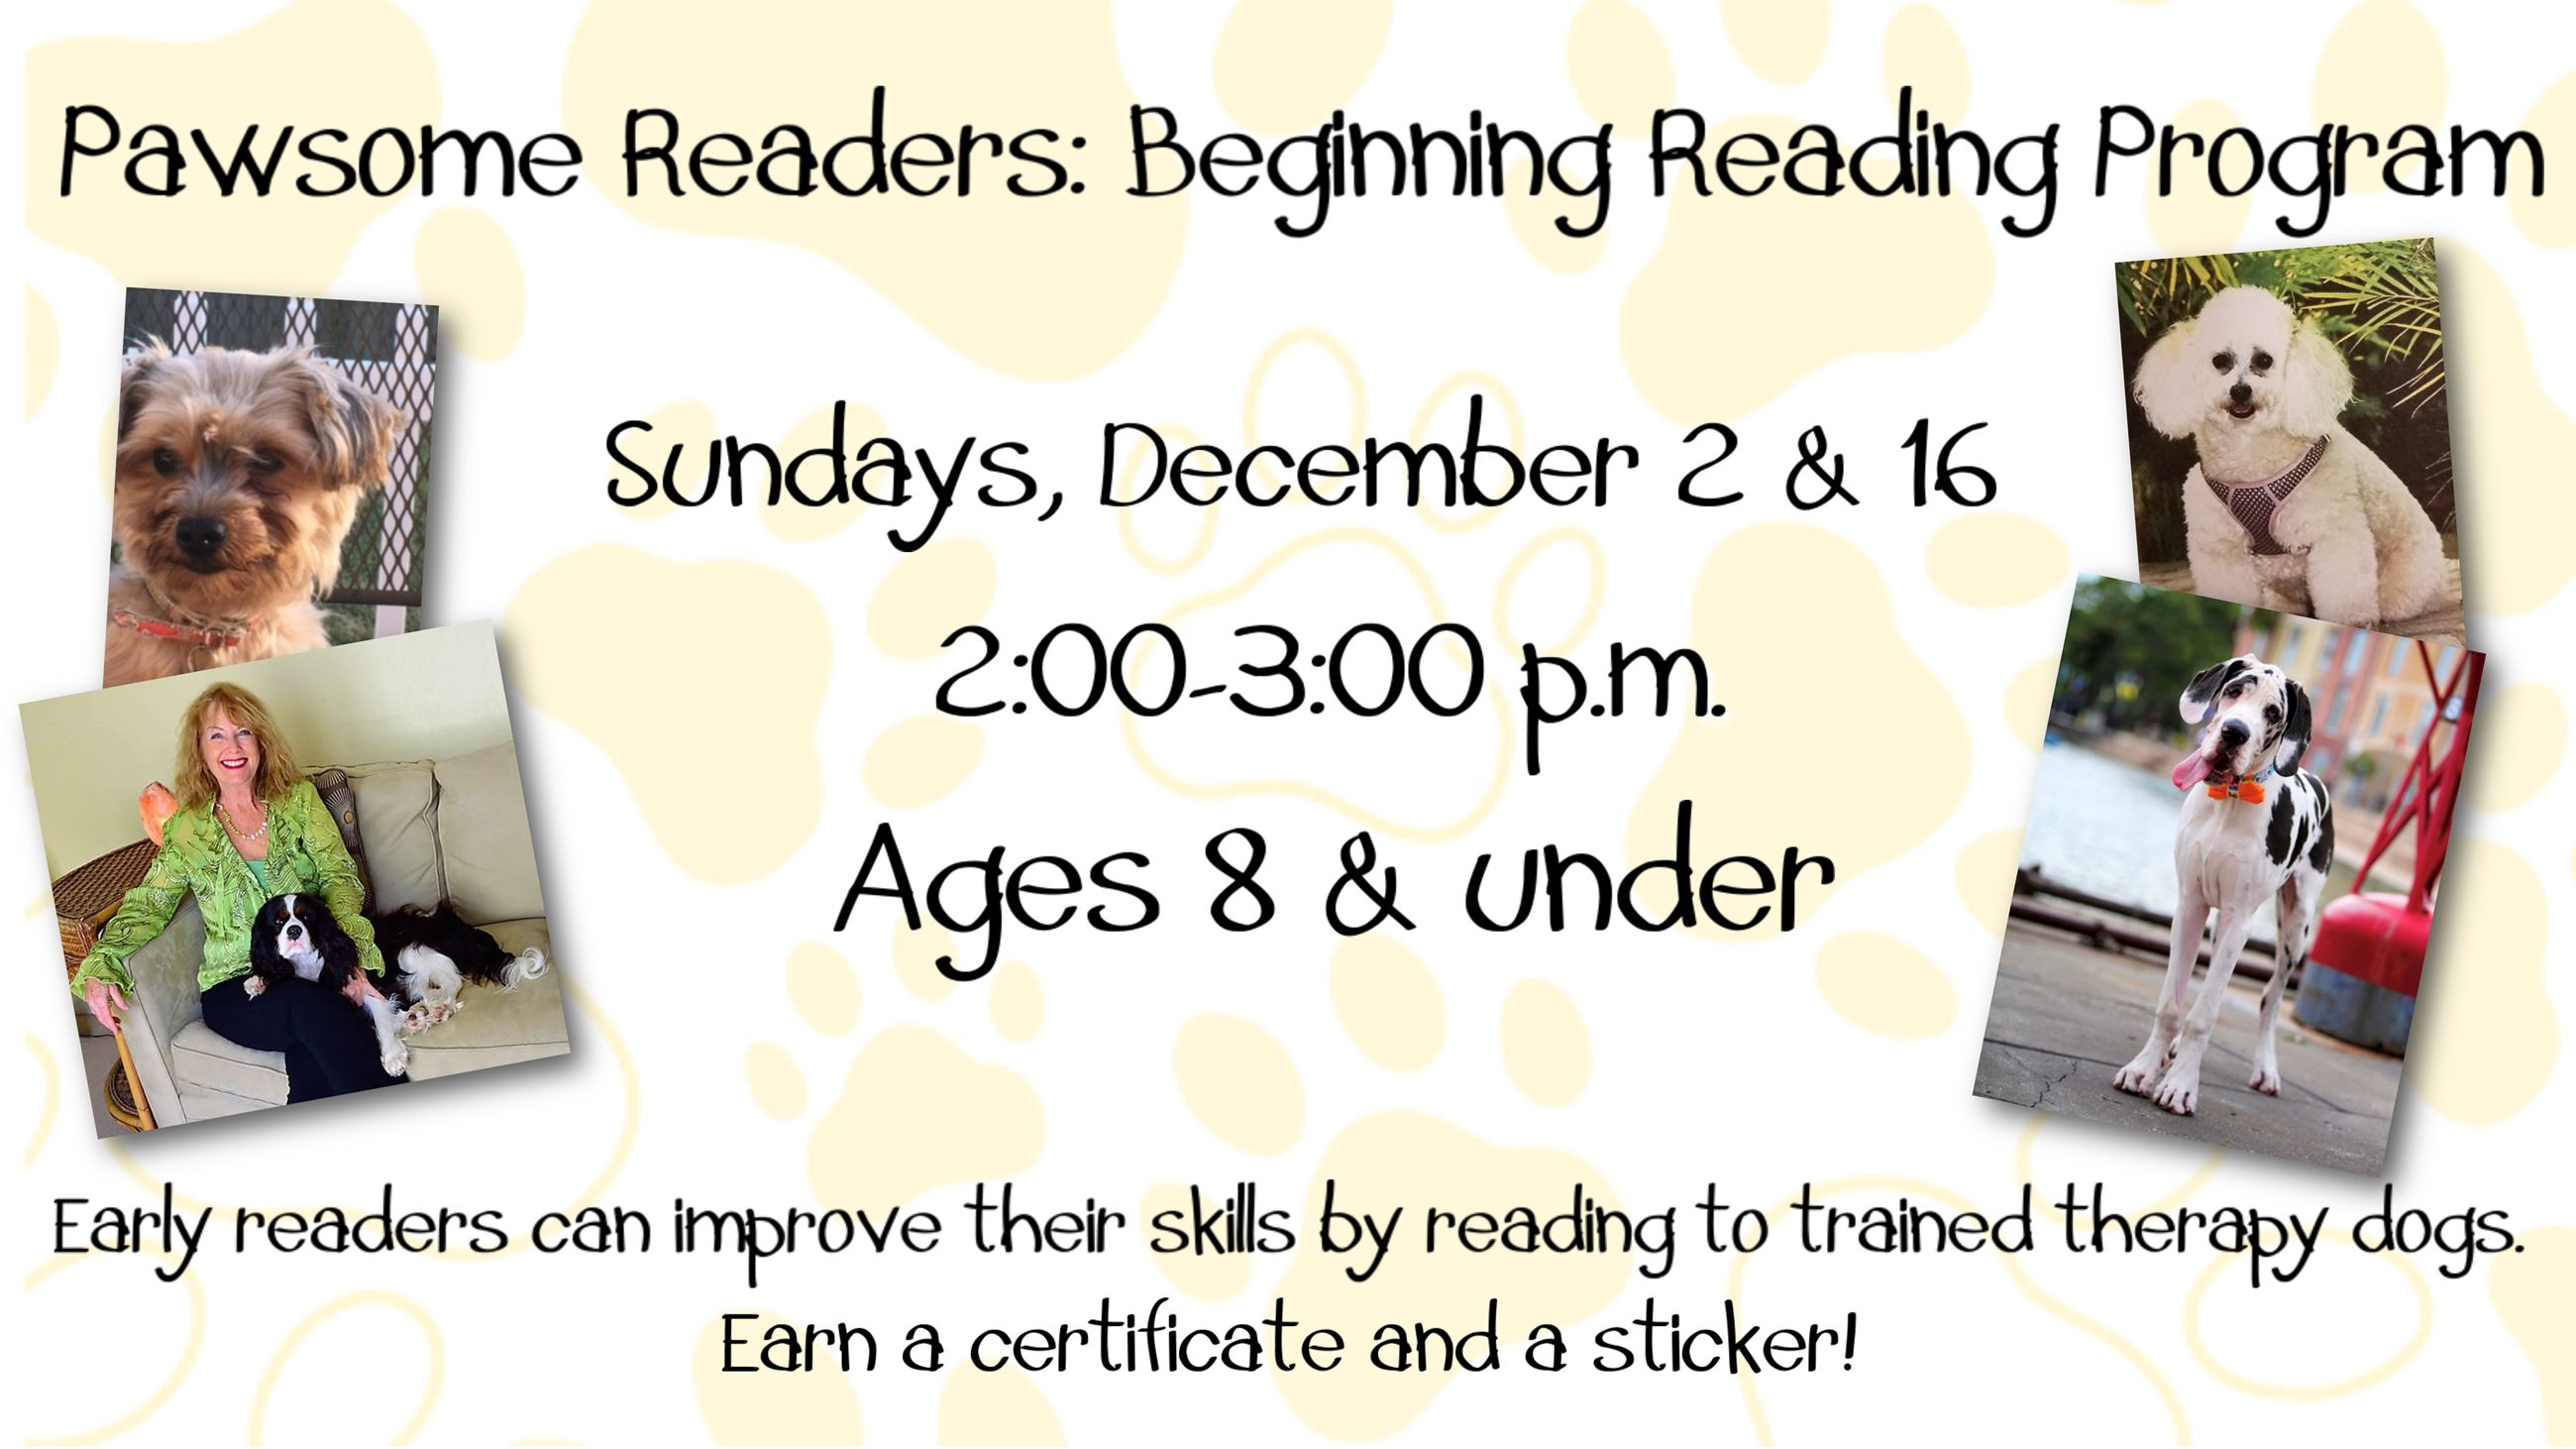 Pawsome Readers: Beginning reading program. December 2 & 16. 2 to 3 p.m. Ages 8 and under.